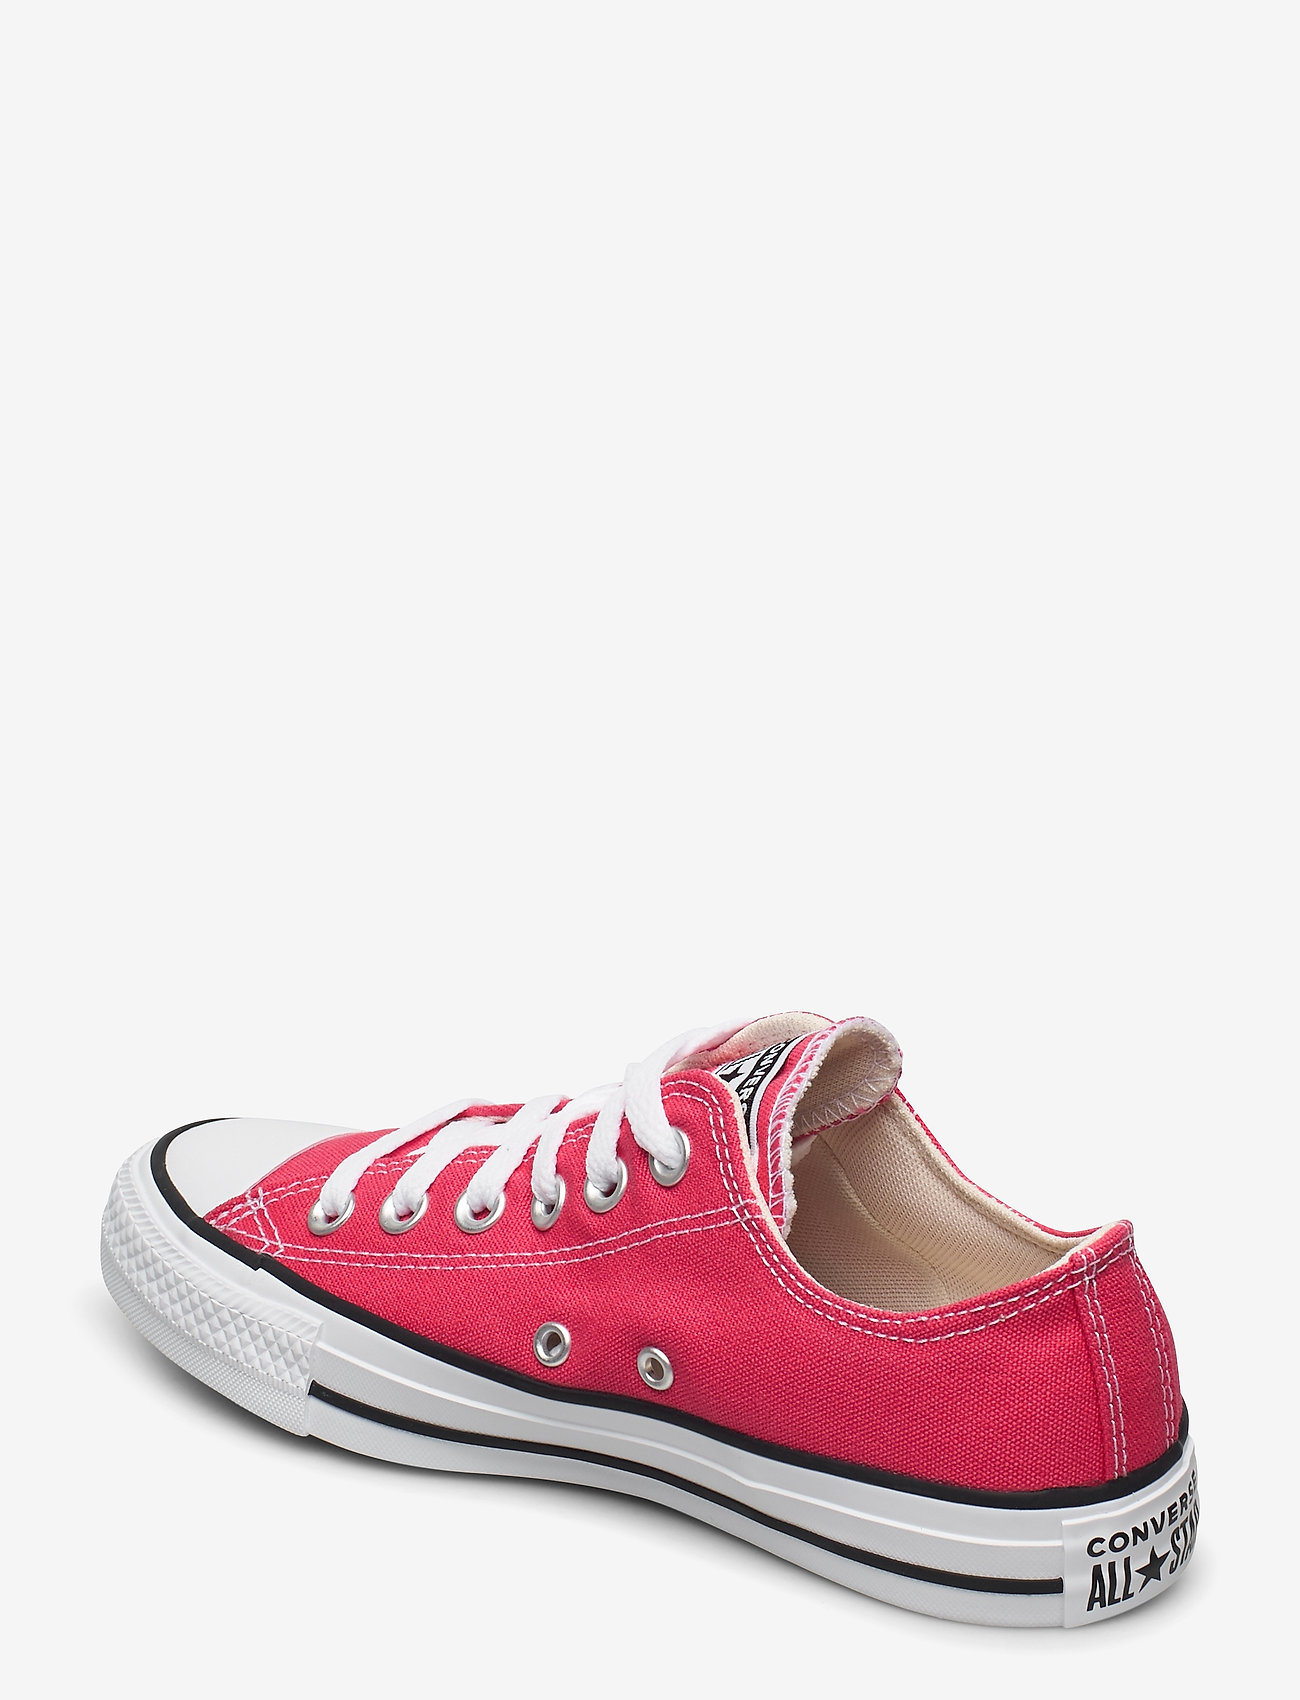 Chuck Taylor All Star Ox (Pink) (70 €) - Converse XE8hWhct